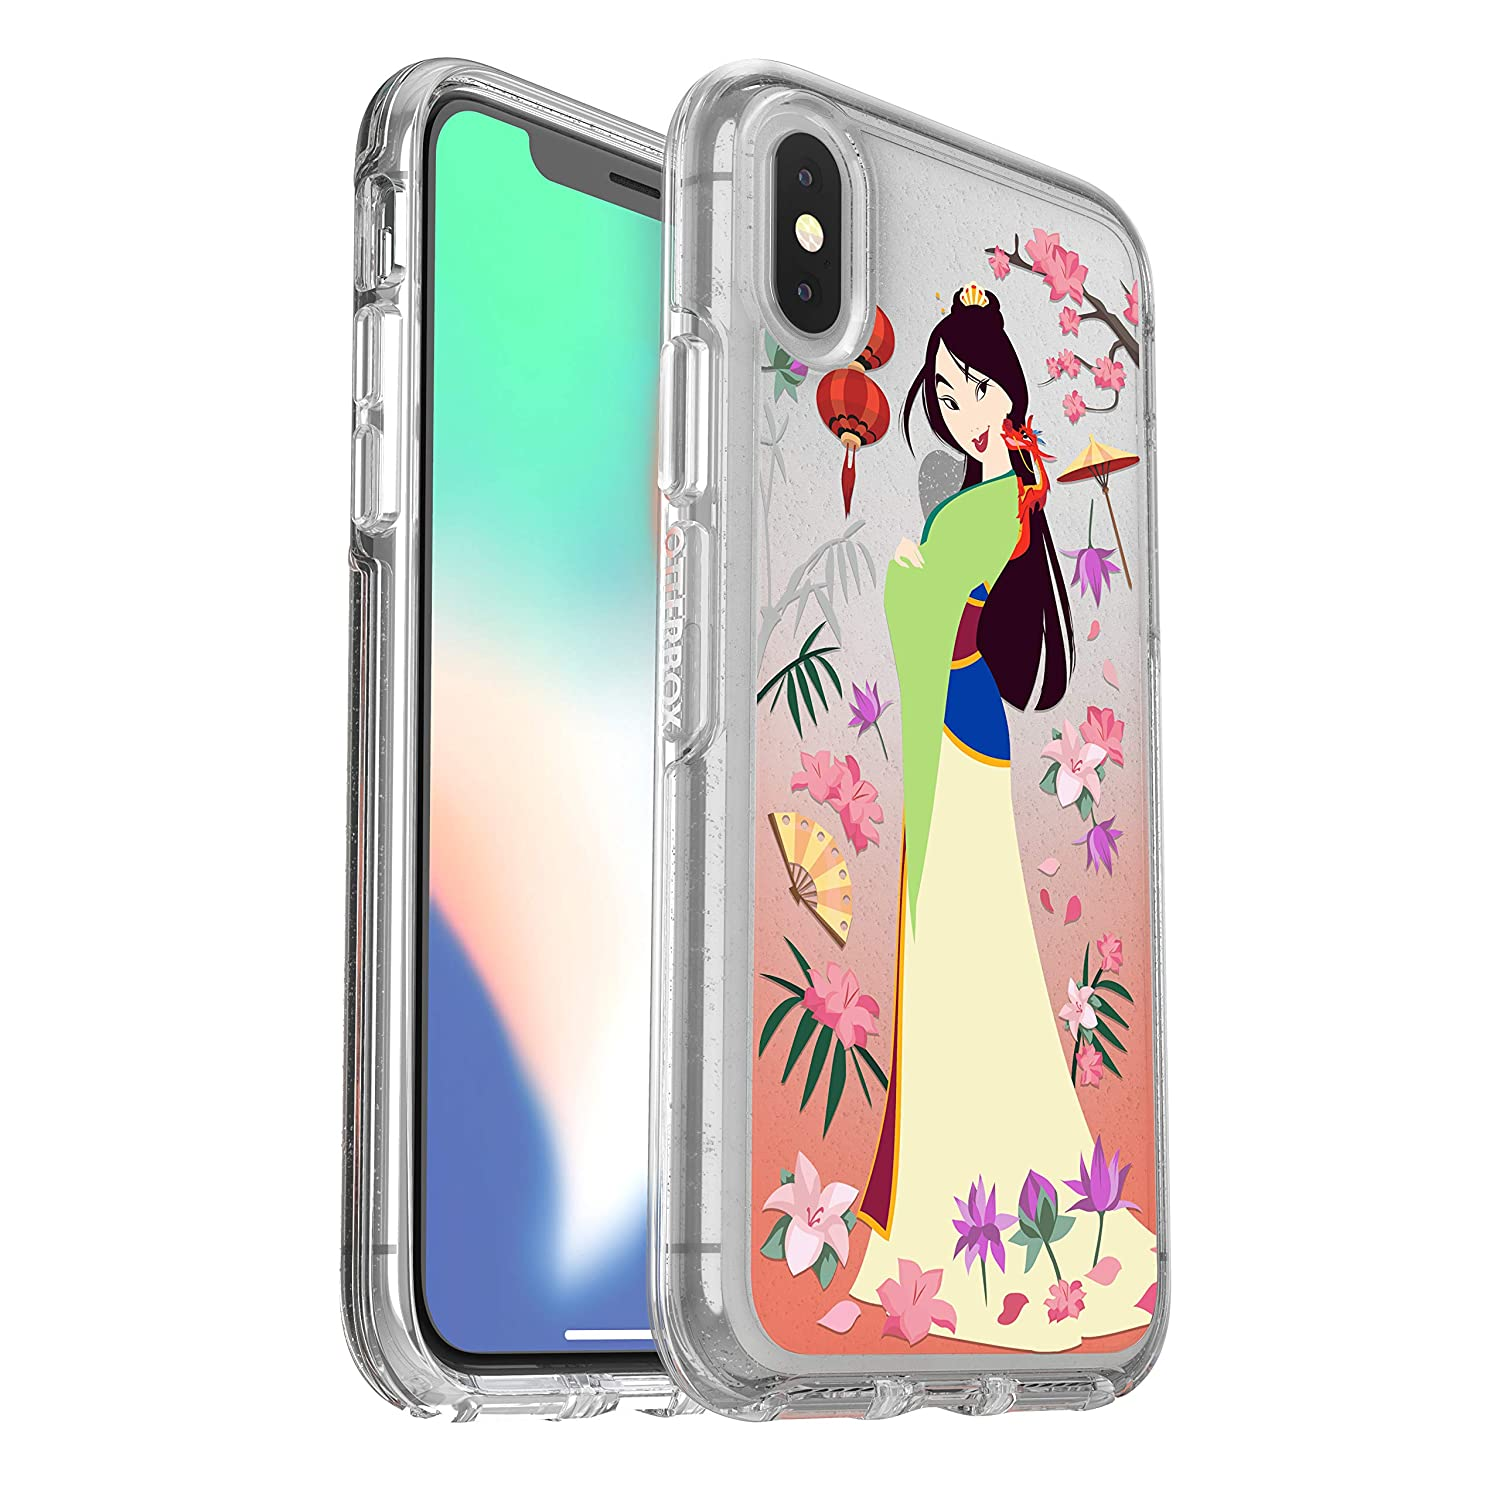 size 40 d377e bcc4c OtterBox Symmetry Series Disney Power of Princess Case for iPhone Xs &  iPhone X - Retail Packaging - Garden of Honor (Mulan) (Silver  Flake/Clear/Mulan ...